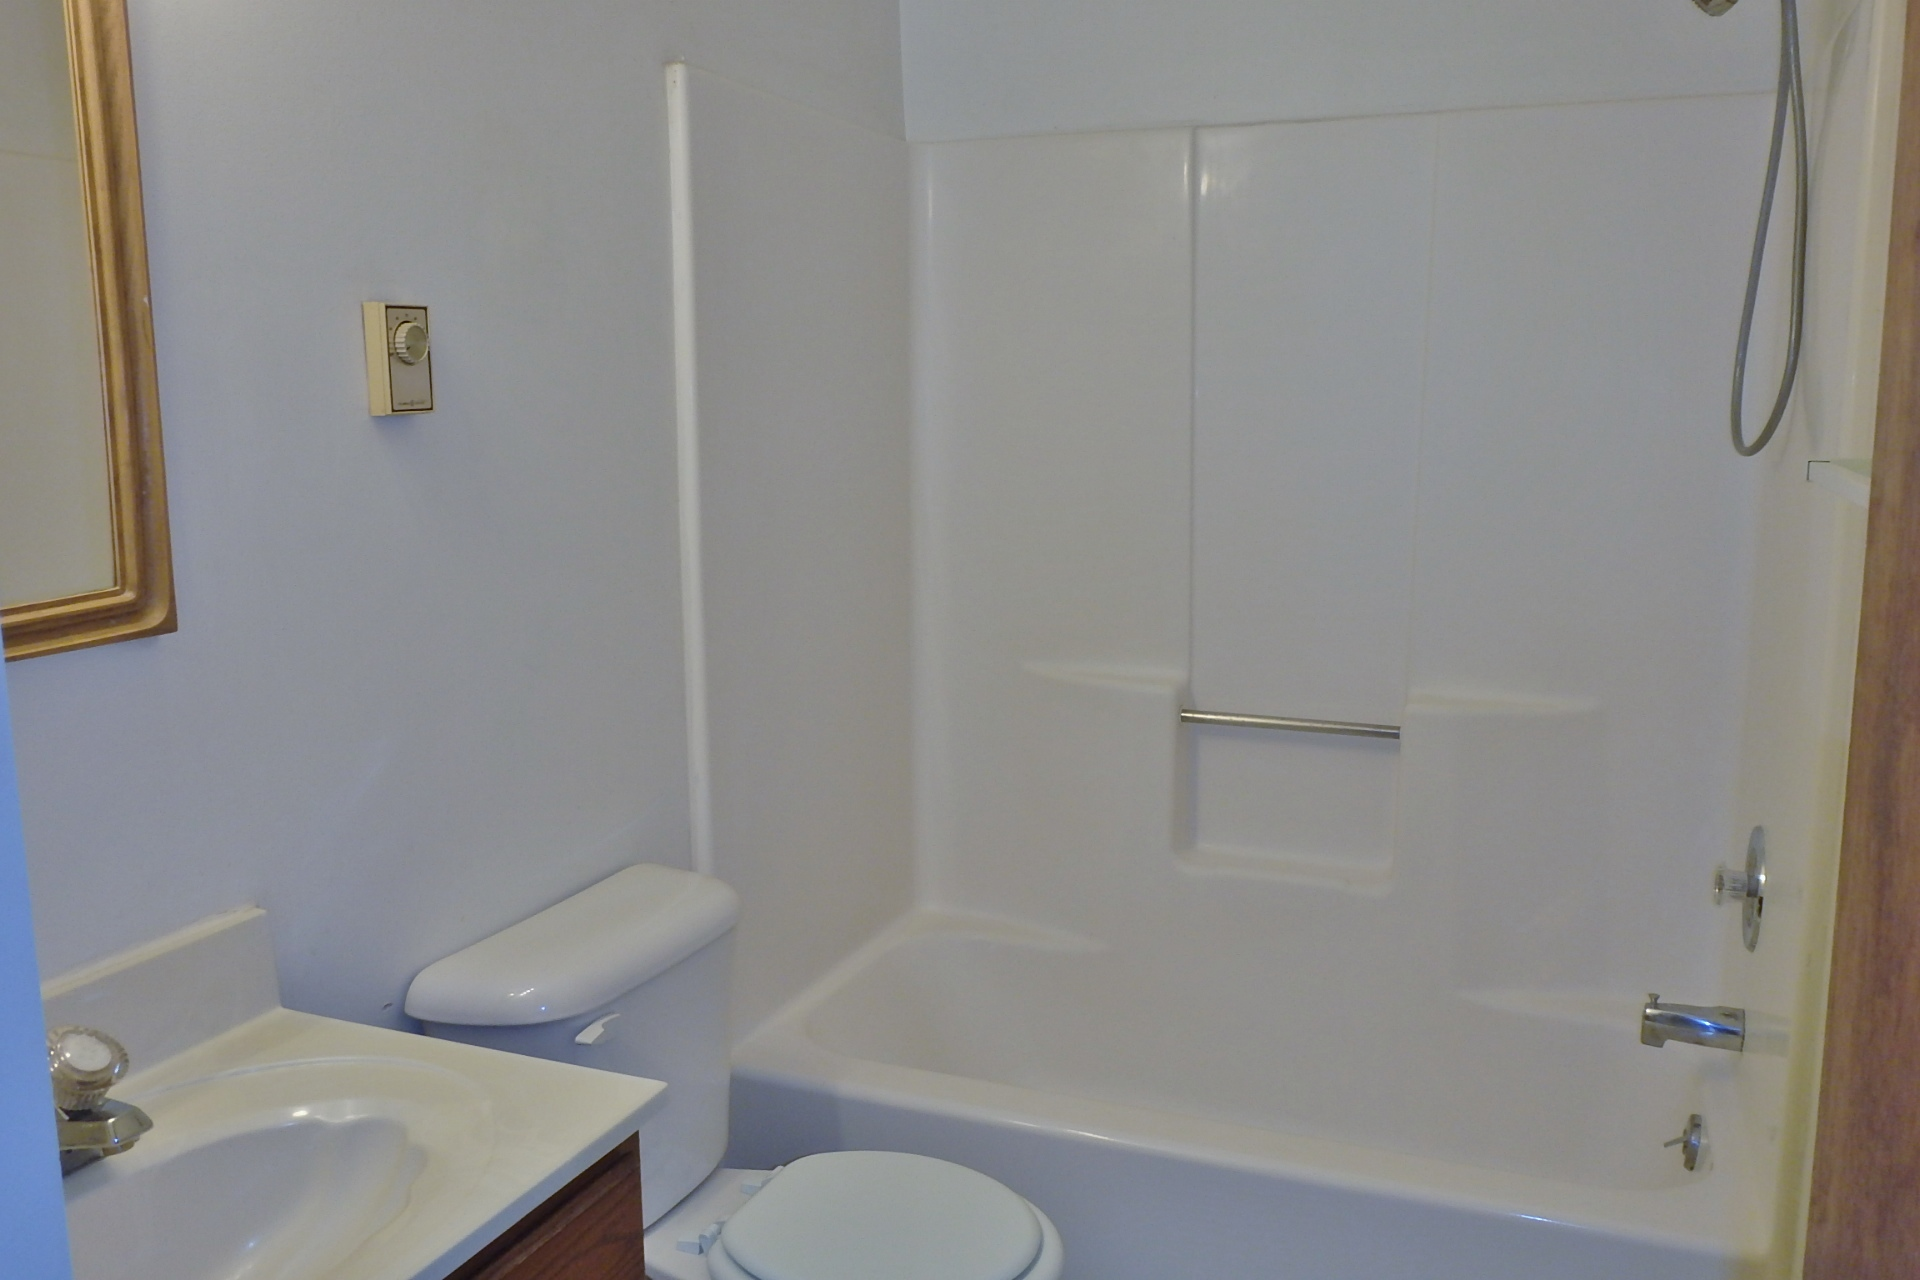 Bath room photo at 920-5 Southgate Drive, State College PA.